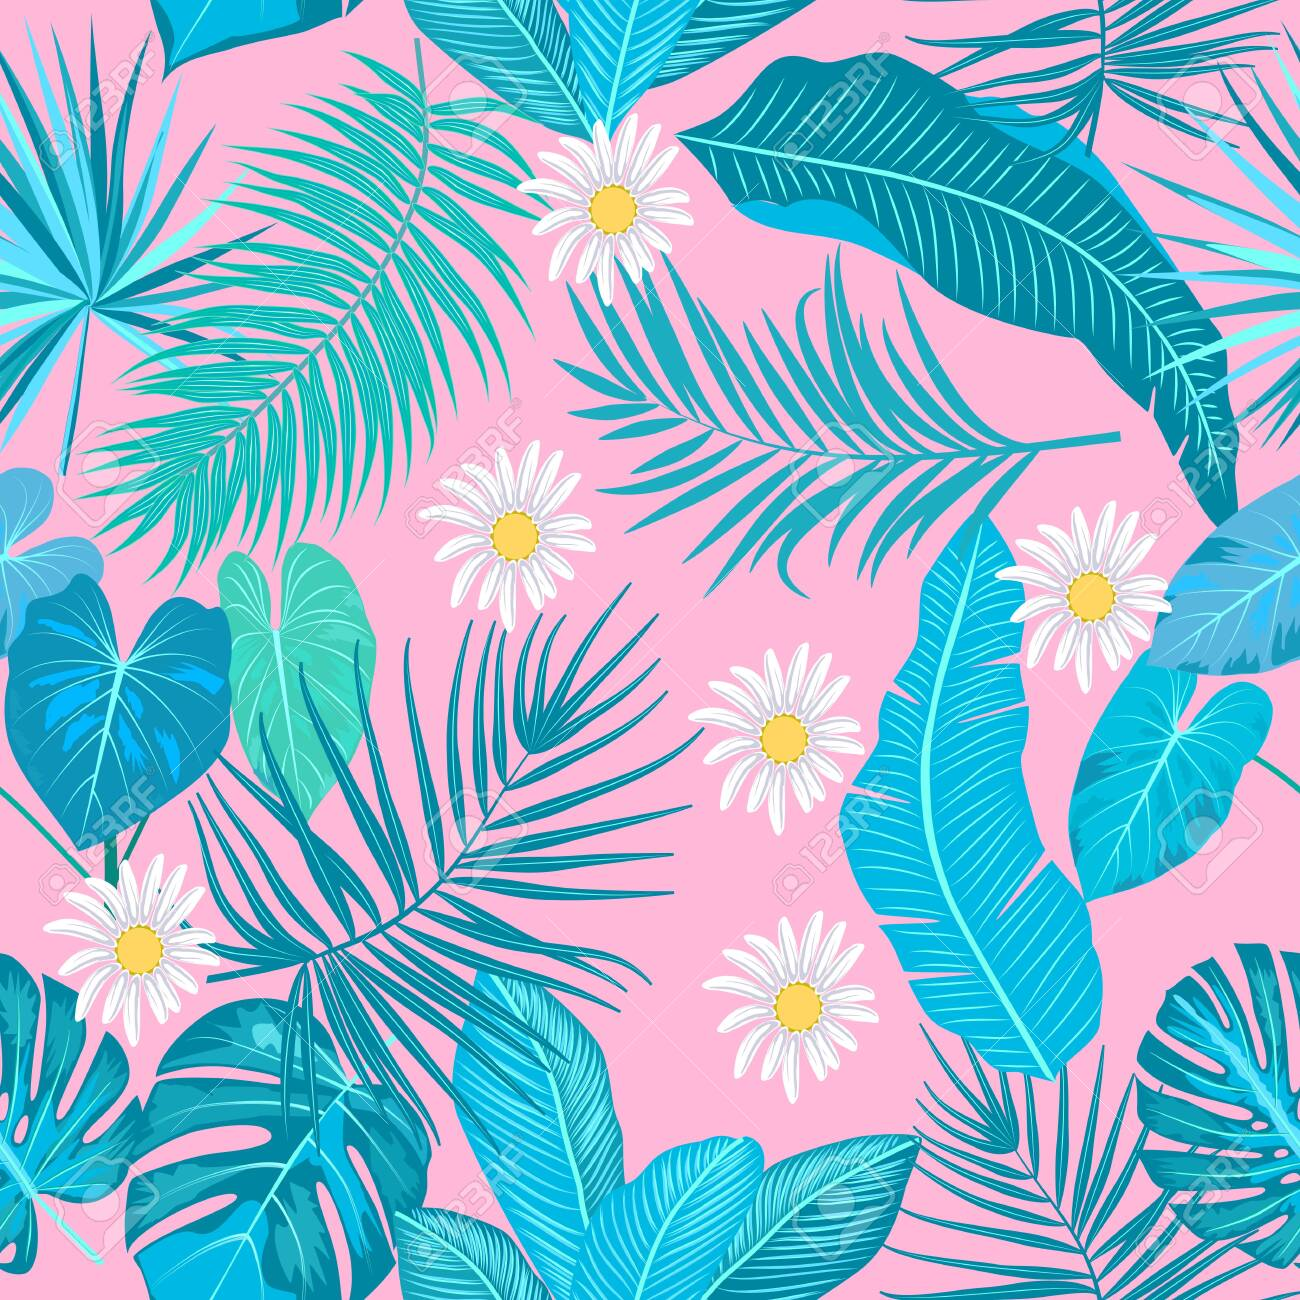 Tropical jungle palm leaves seamless pattern, monstera and flowers, vector background - 134926232